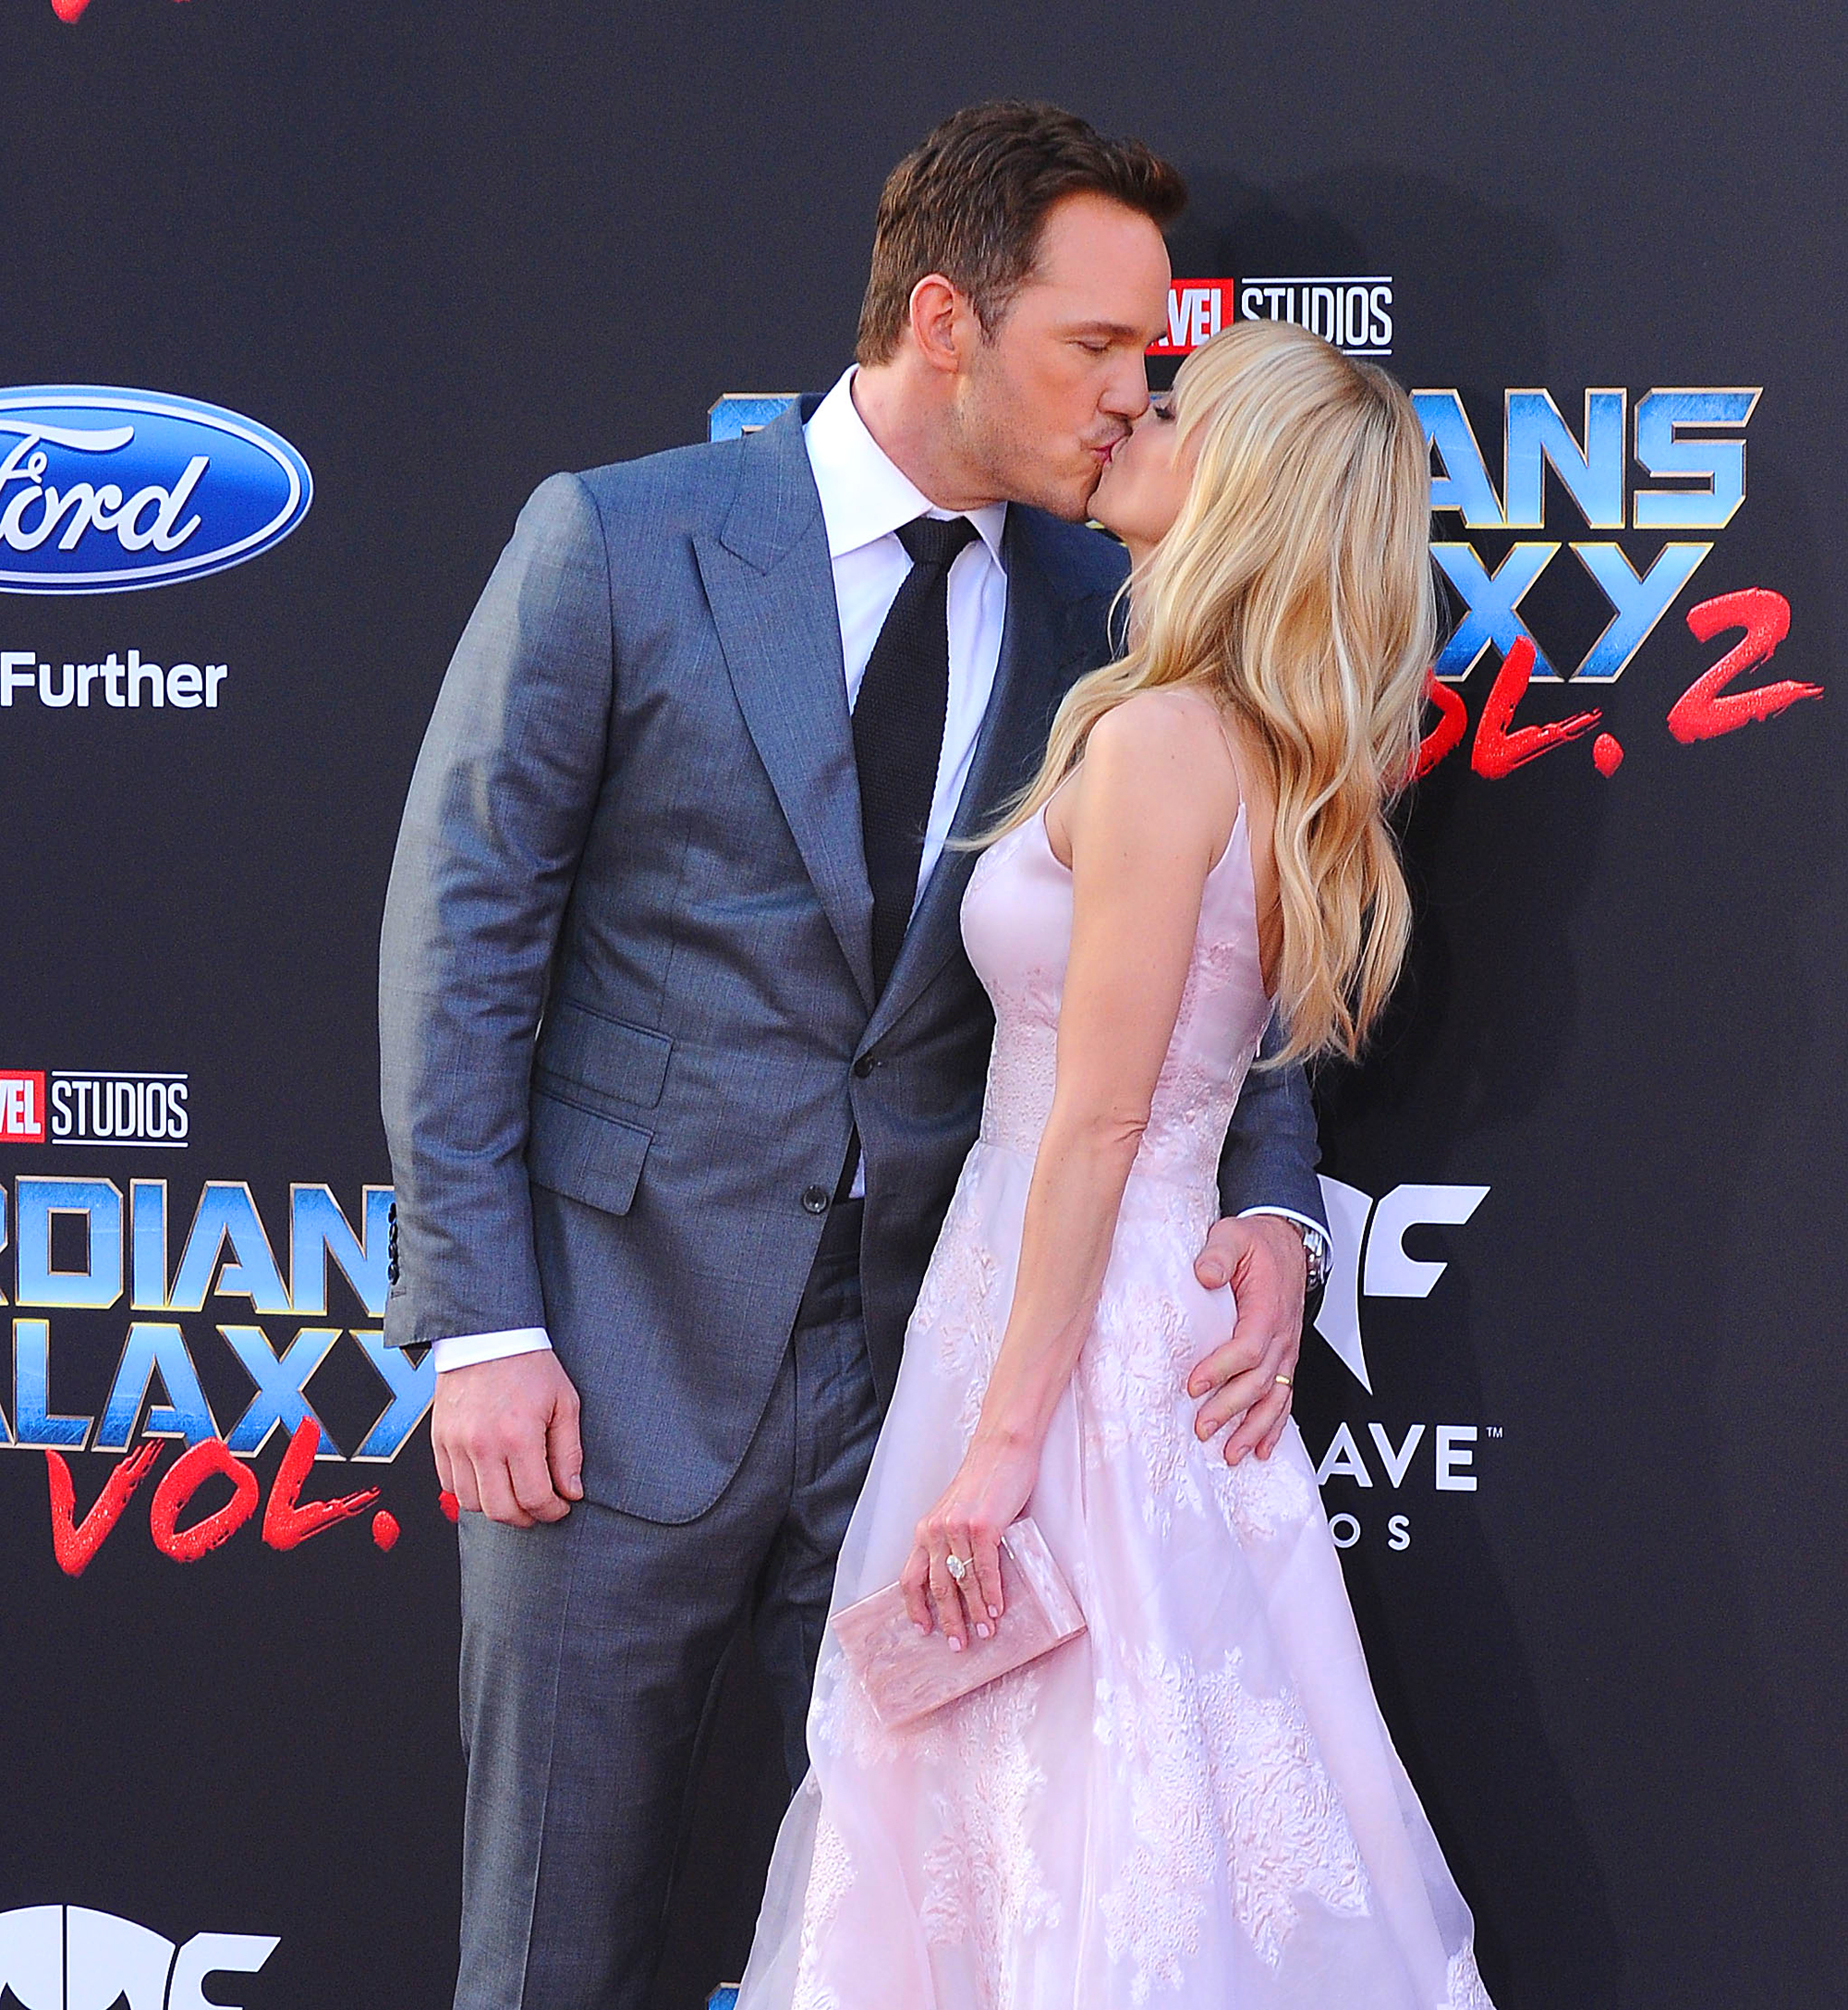 """Everything Chris Pratt and Anna Faris Have Said About Coparenting Their Son Jack - When Faris and Pratt announced their separation in August 2017, they admitted that their focus was their son's happiness. """"We tried really hard for a long time, and we're really disappointed,"""" they said in a joint statement at the time of their then-4-year-old."""